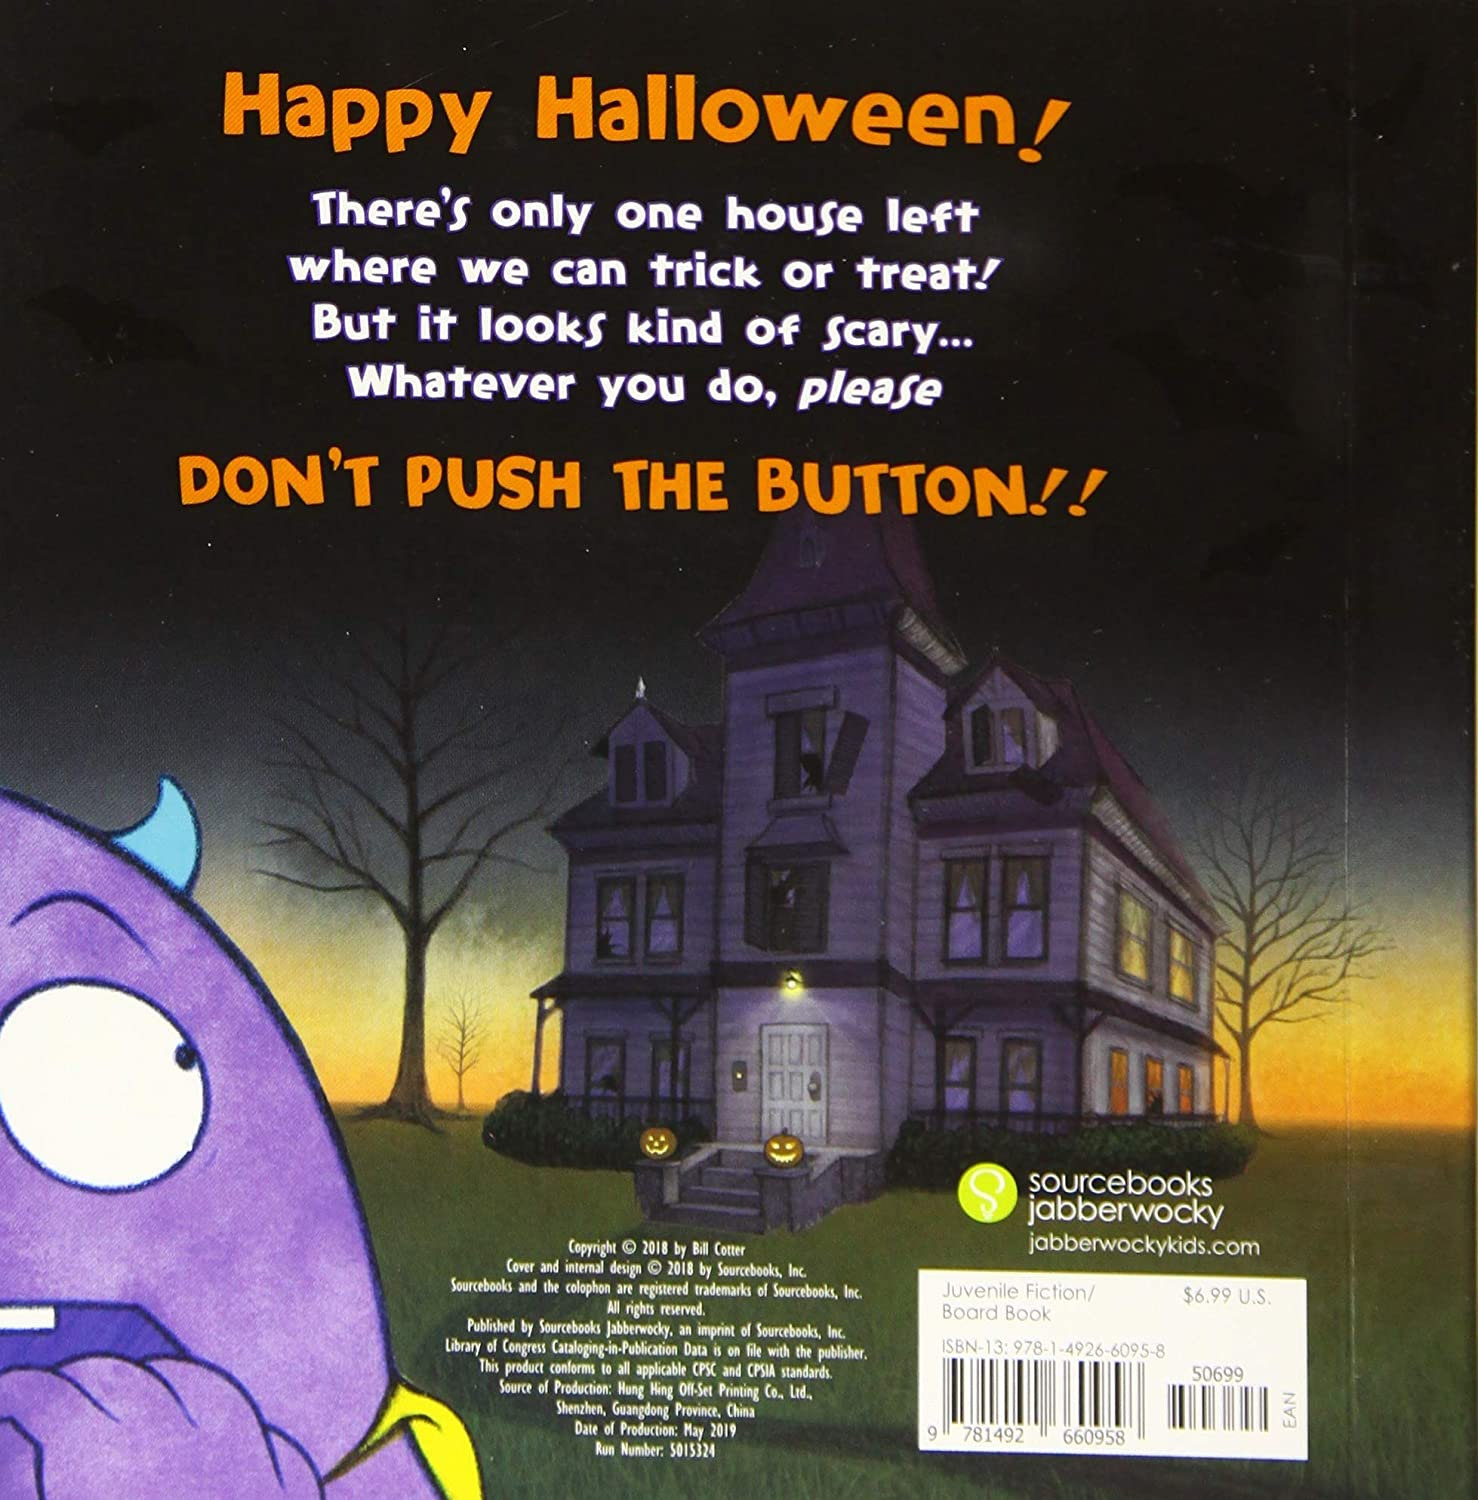 Dont Push the Button! A Halloween Treat: A Spooky Fun Interactive Book For Kids